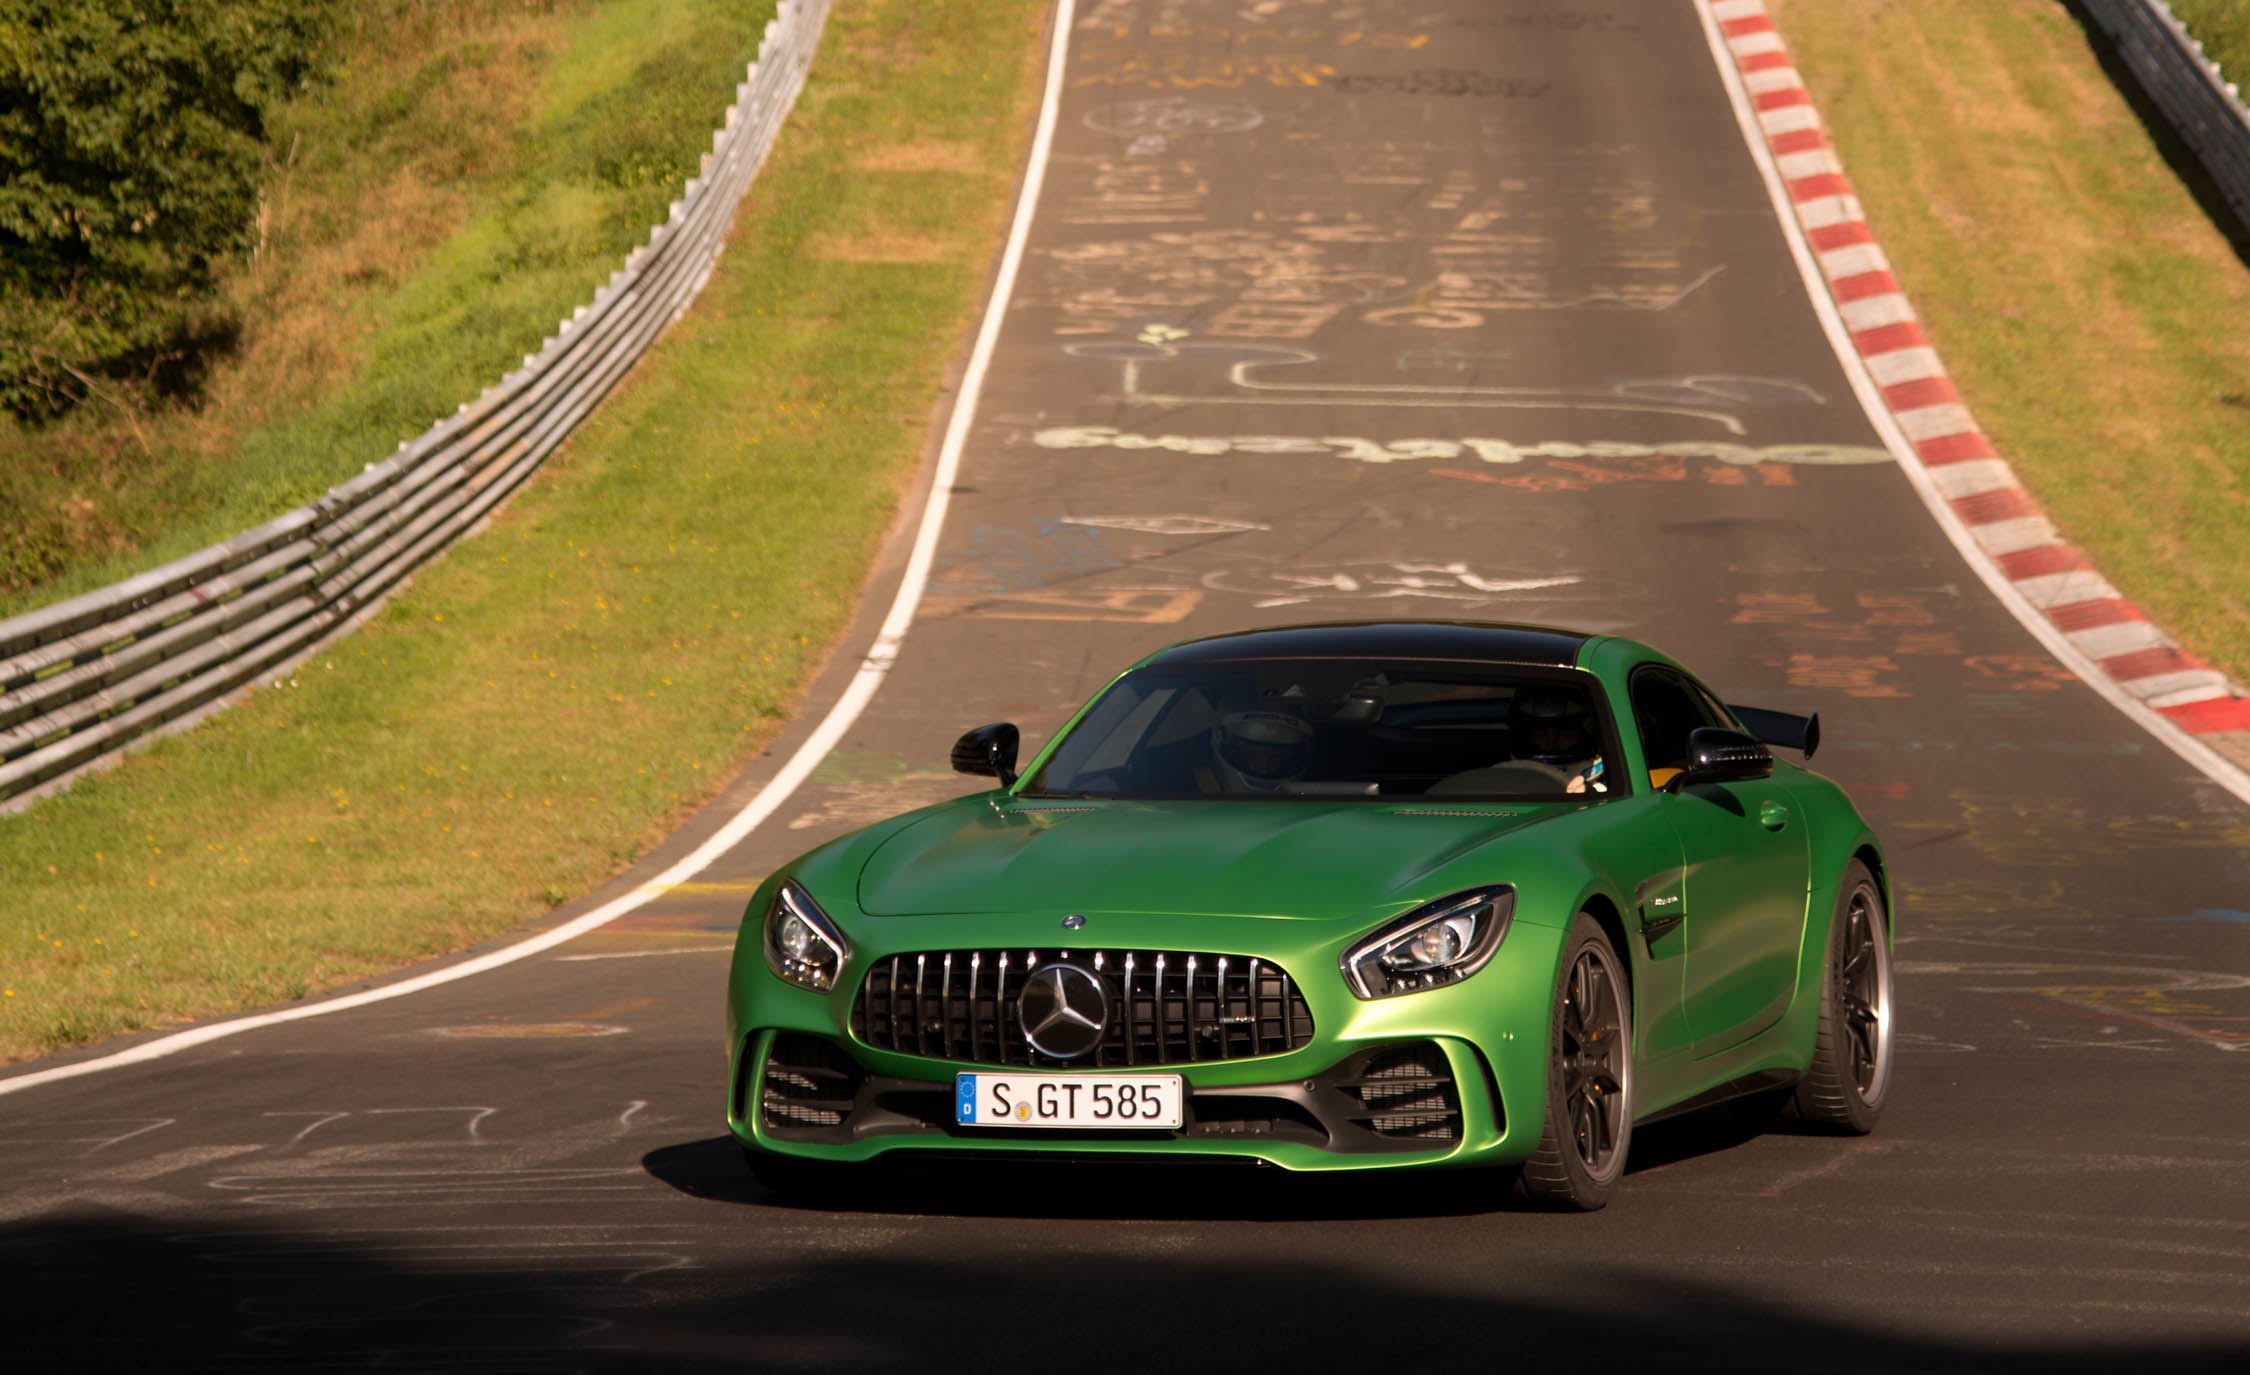 2017 Mercedes Amg Gt R Exterior (View 8 of 22)